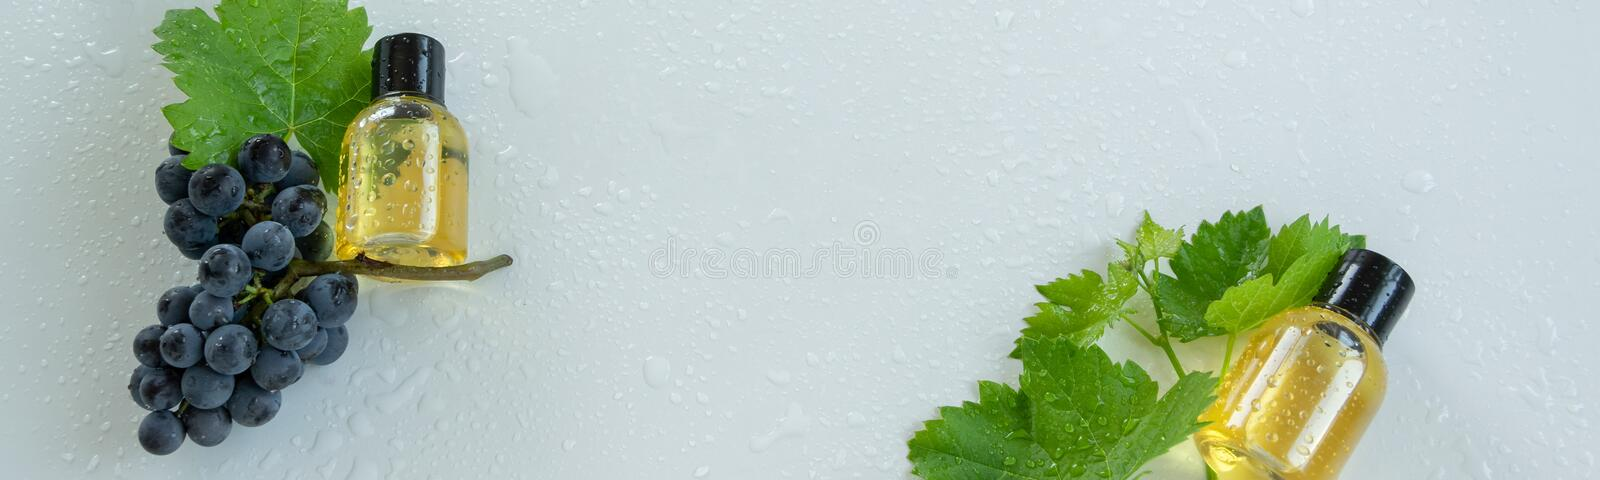 Natural skin care products with grape extracts . Healthy organic remedy. Superfood for the skin royalty free stock photo